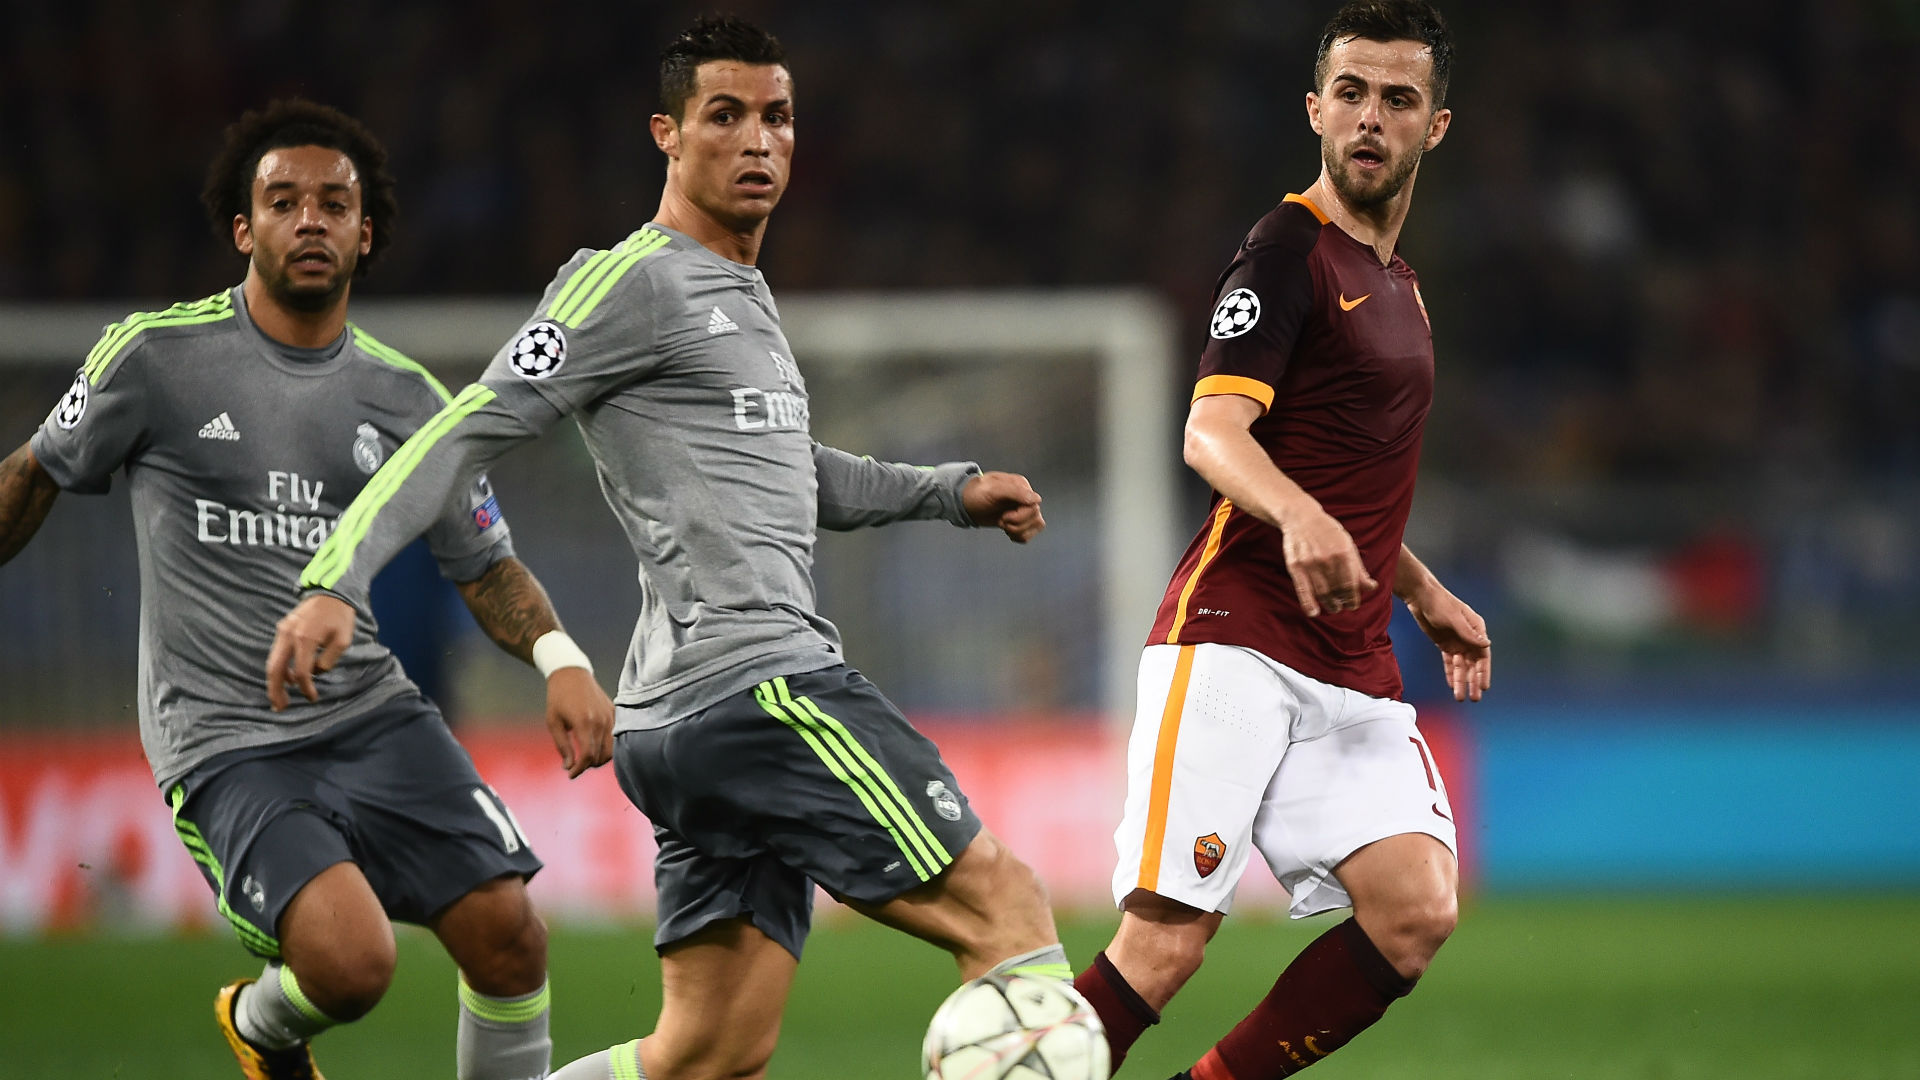 Video: Real Madrid vs AS Roma